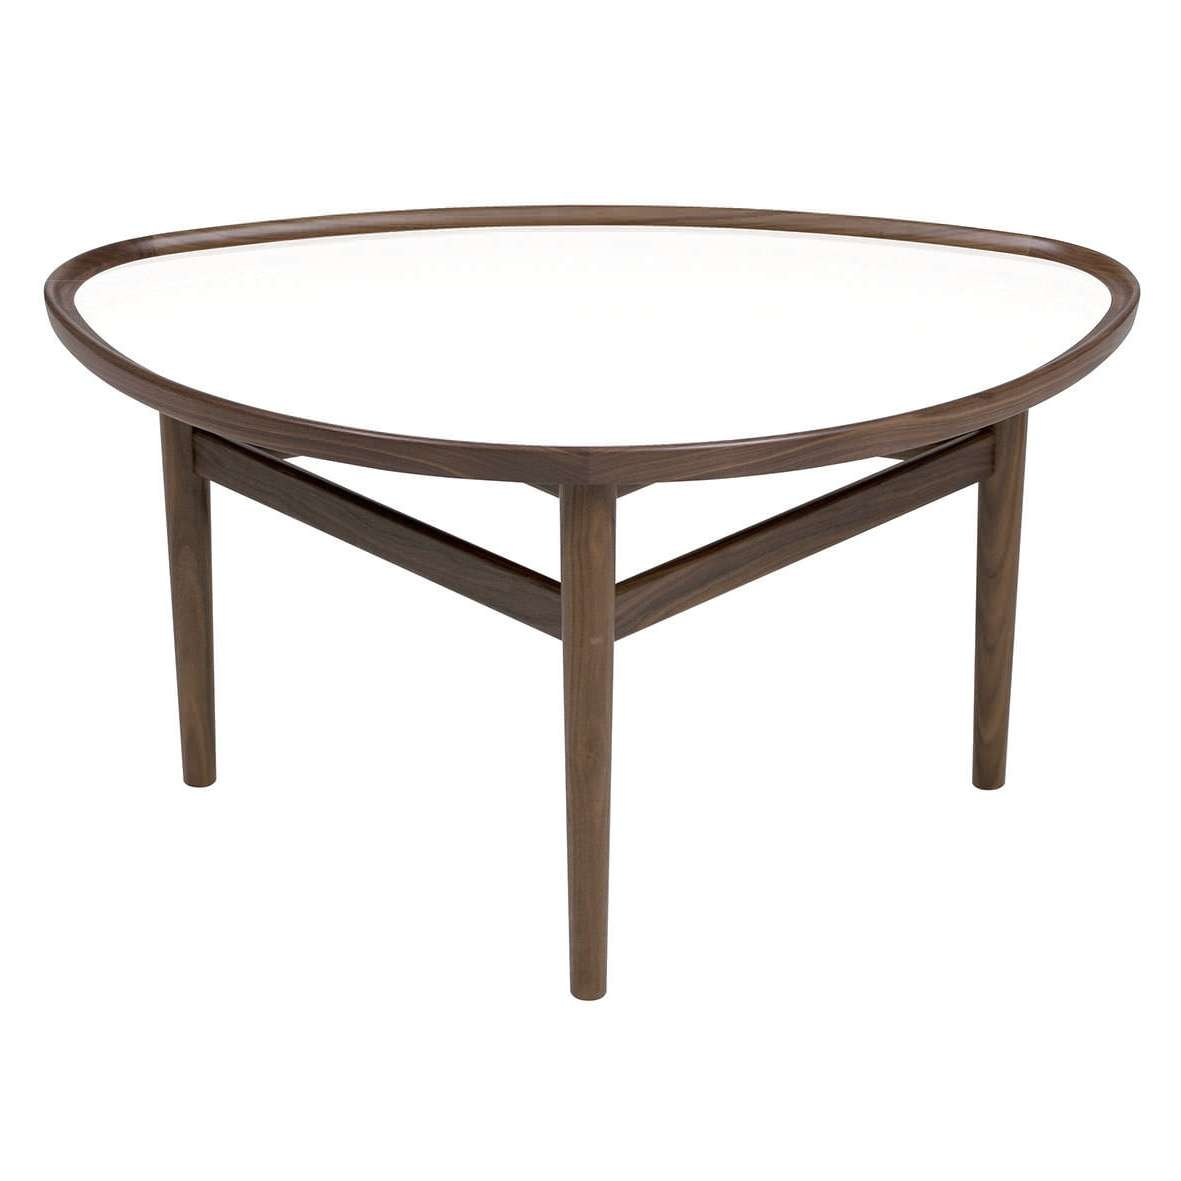 Scandinavian Design Coffee Table / Walnut / Teak / Oval – Eye In Most Up To Date Oval Walnut Coffee Tables (View 16 of 20)